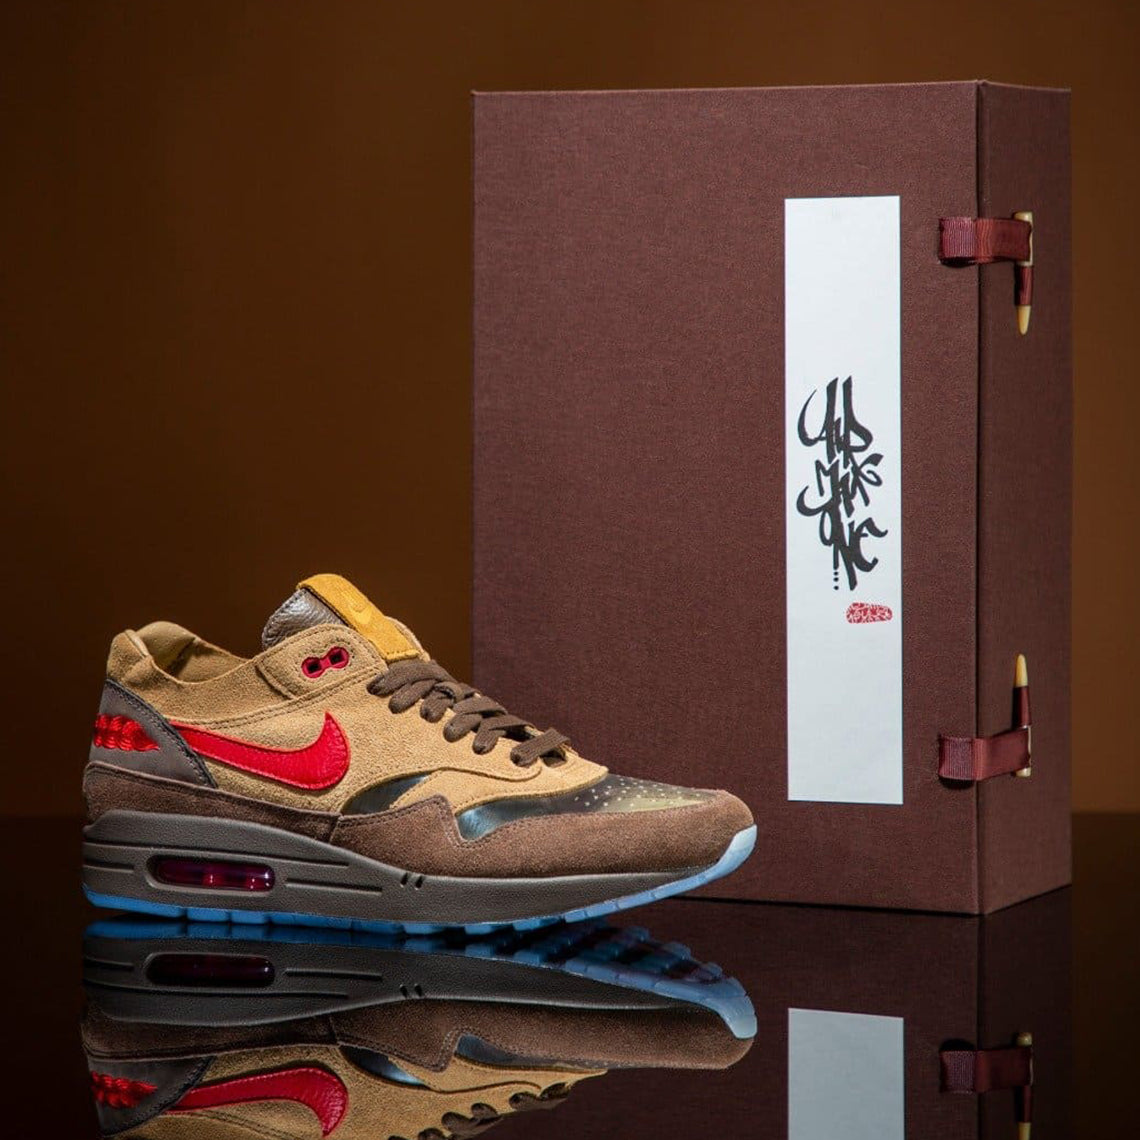 Nike Air Max 1 CLOT K.O.D 2021 Sneaker Release Temple Wear Blog News Red Traditional Logo  Swoosh Red Brown Japanese Tea Inspired Transparent Running Shoes Kiss Of Dead Sneaker Release Friends & Family Packaging